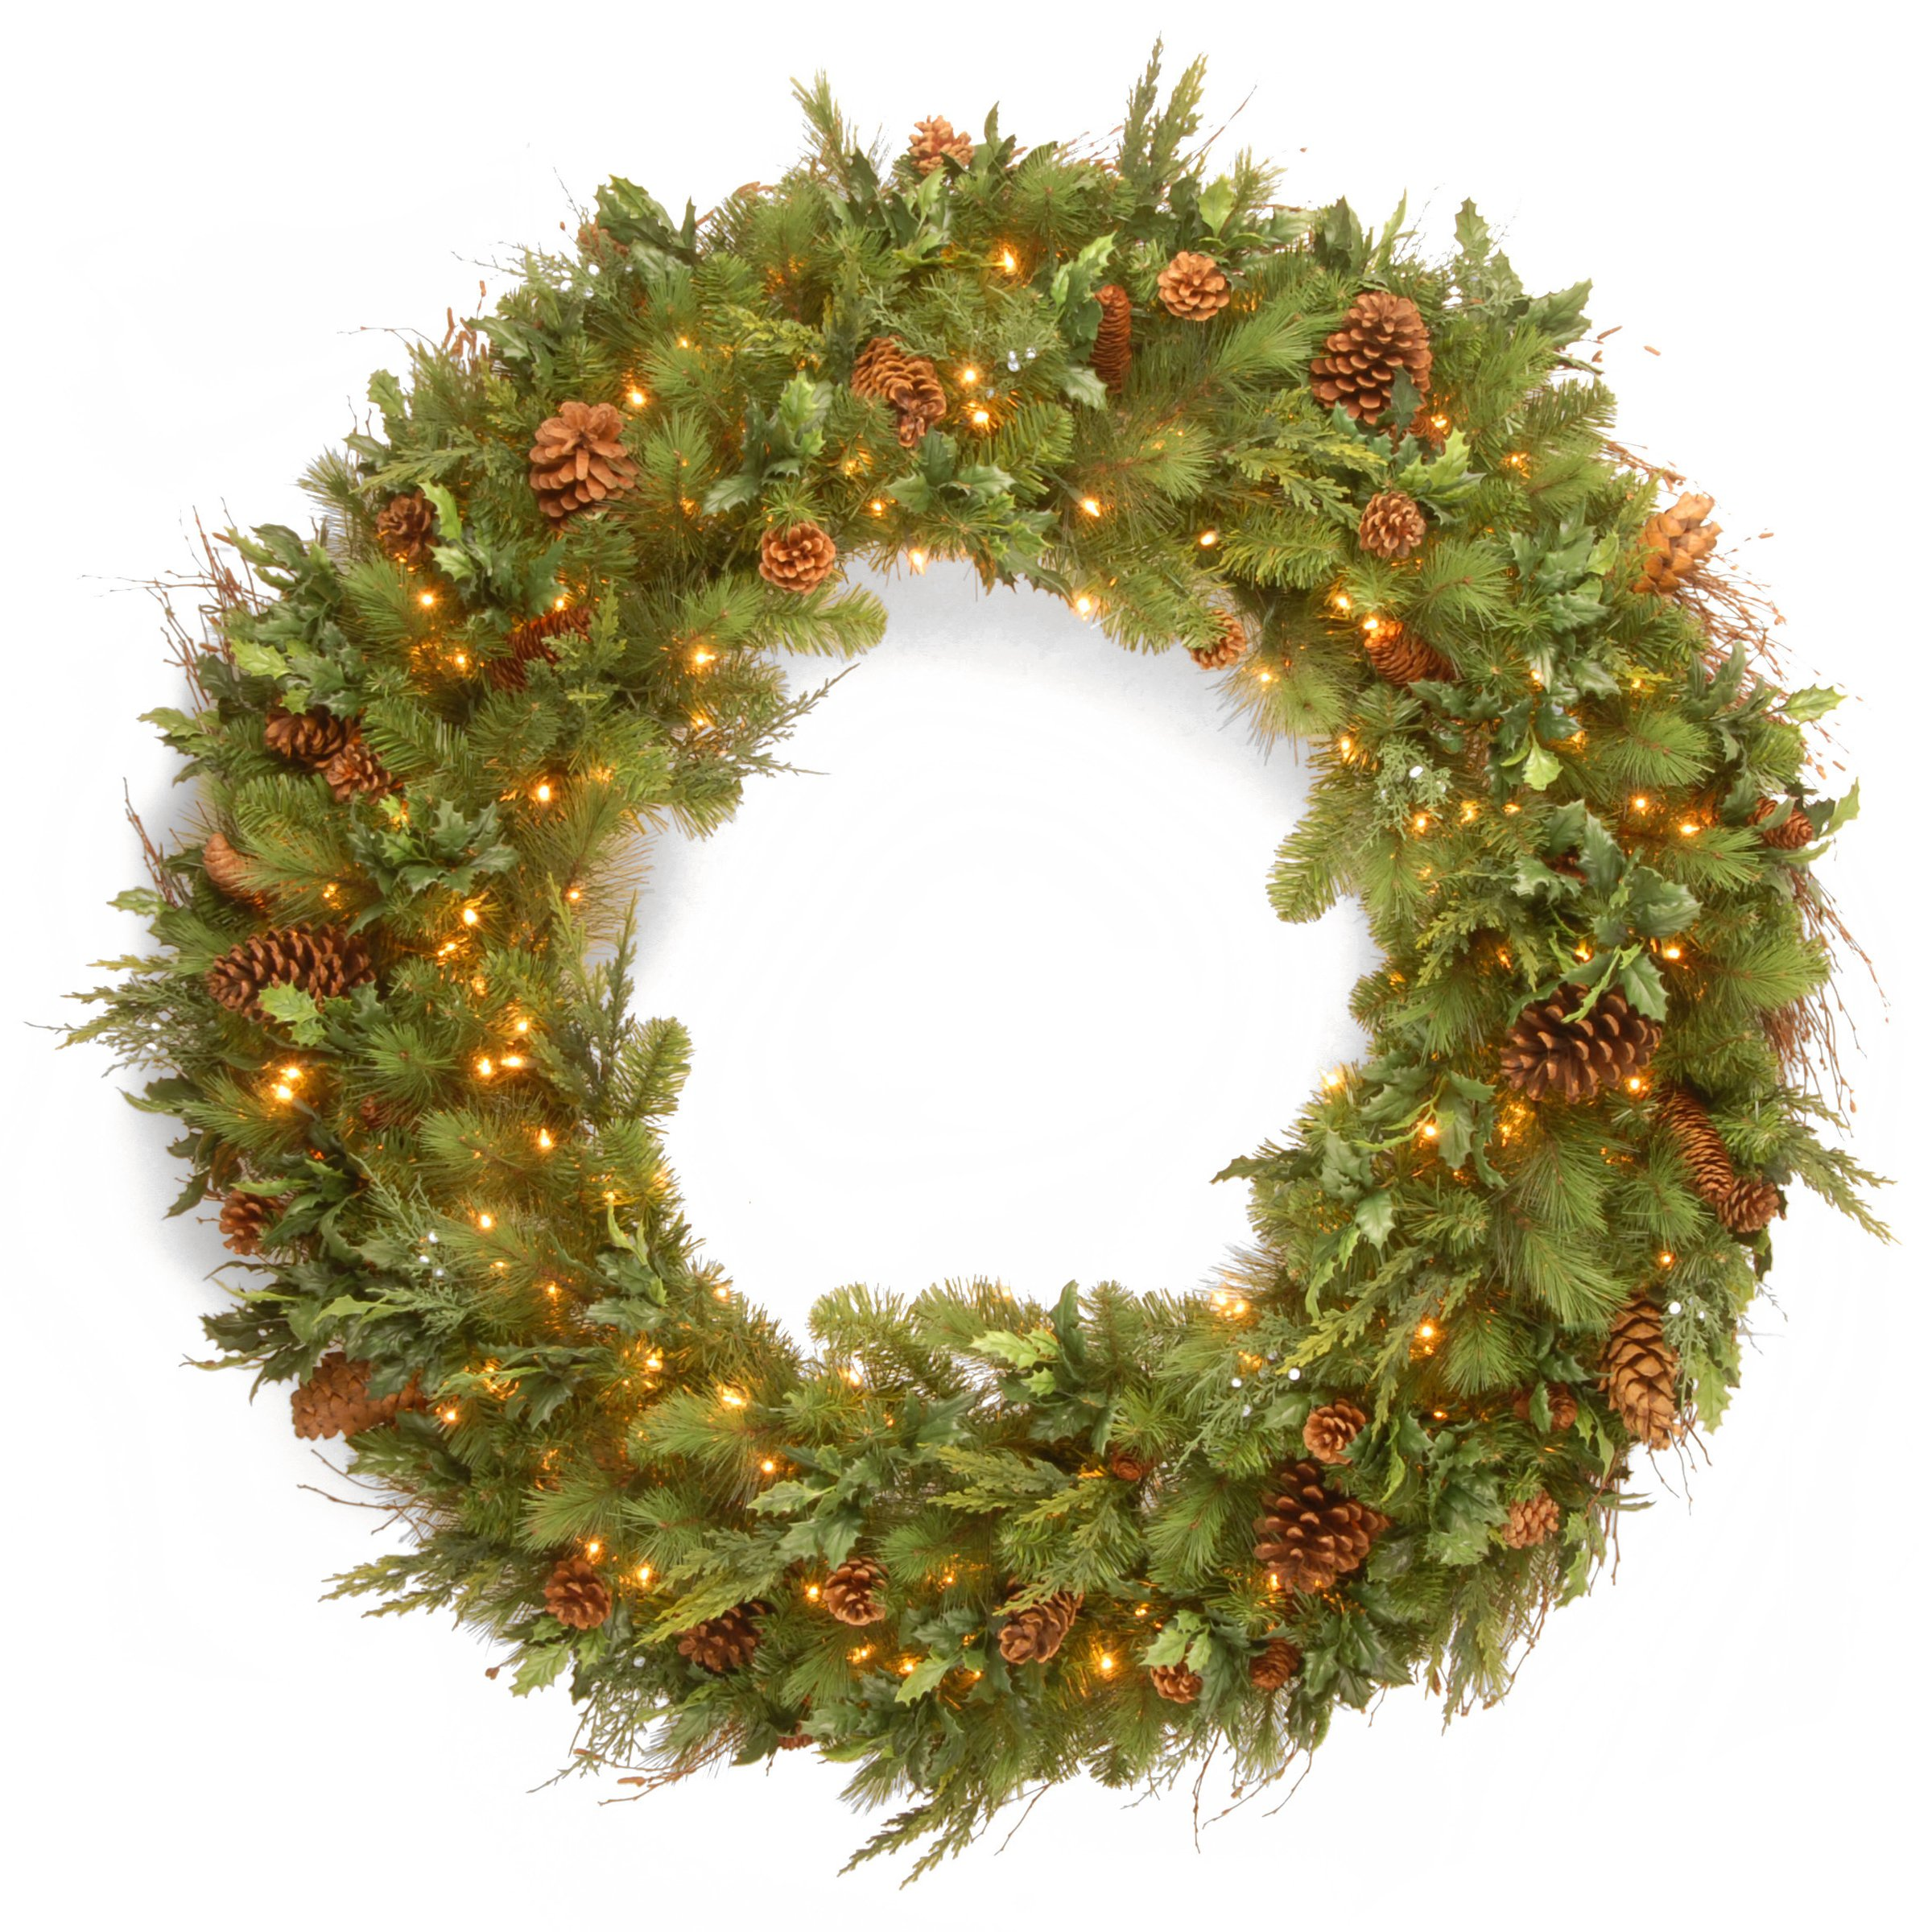 National Tree 48 Inch Juniper Pine Wreath with Mixed Pine Cones and 200 Warm White LED Lights (DC13-113L-48W-S)